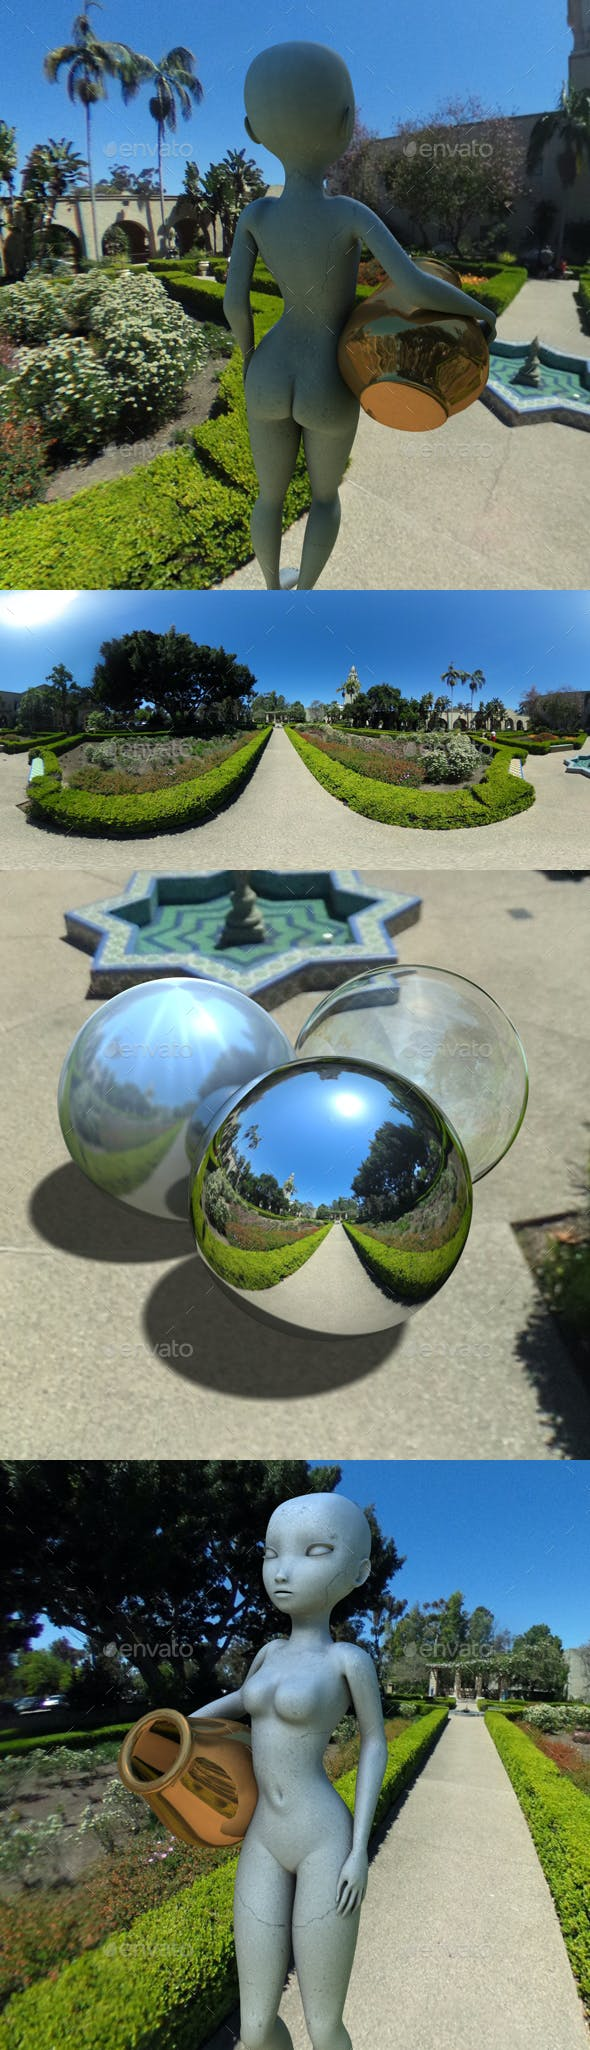 Alcazar Park Gardens HDRI - 3DOcean Item for Sale